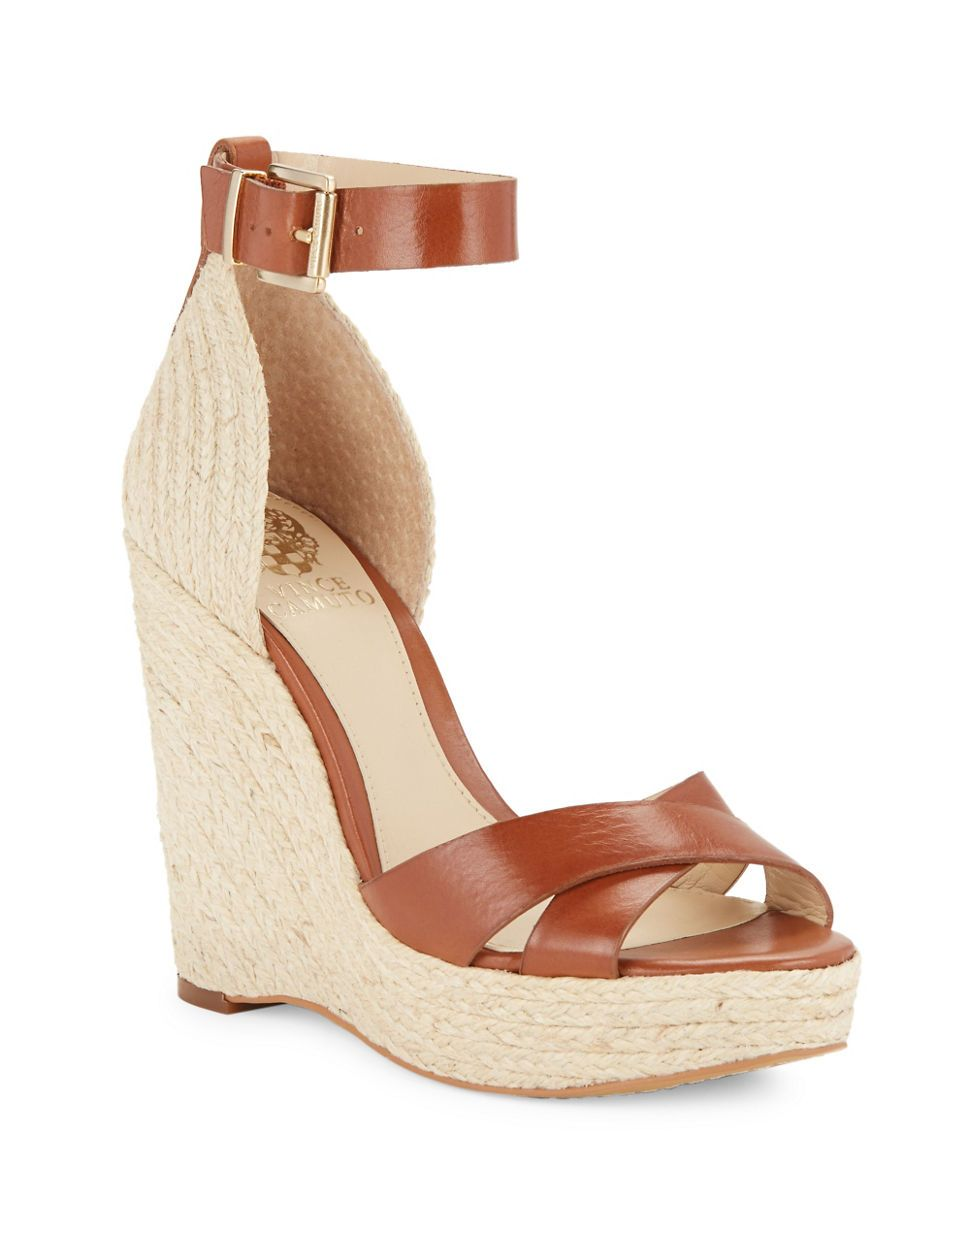 "<ul><li>Vintage appeal with crossed straps</li> <li>Jute covered heel, 4""</li> <li>Jute covered platform, 1""</li> <li>Compares to a 3"" heel</li> <li>Adjustable ankle strap with buckle closure</li> <li>Leather upper</li> <li>Open toe </li> <li>Fabric trim</li>"